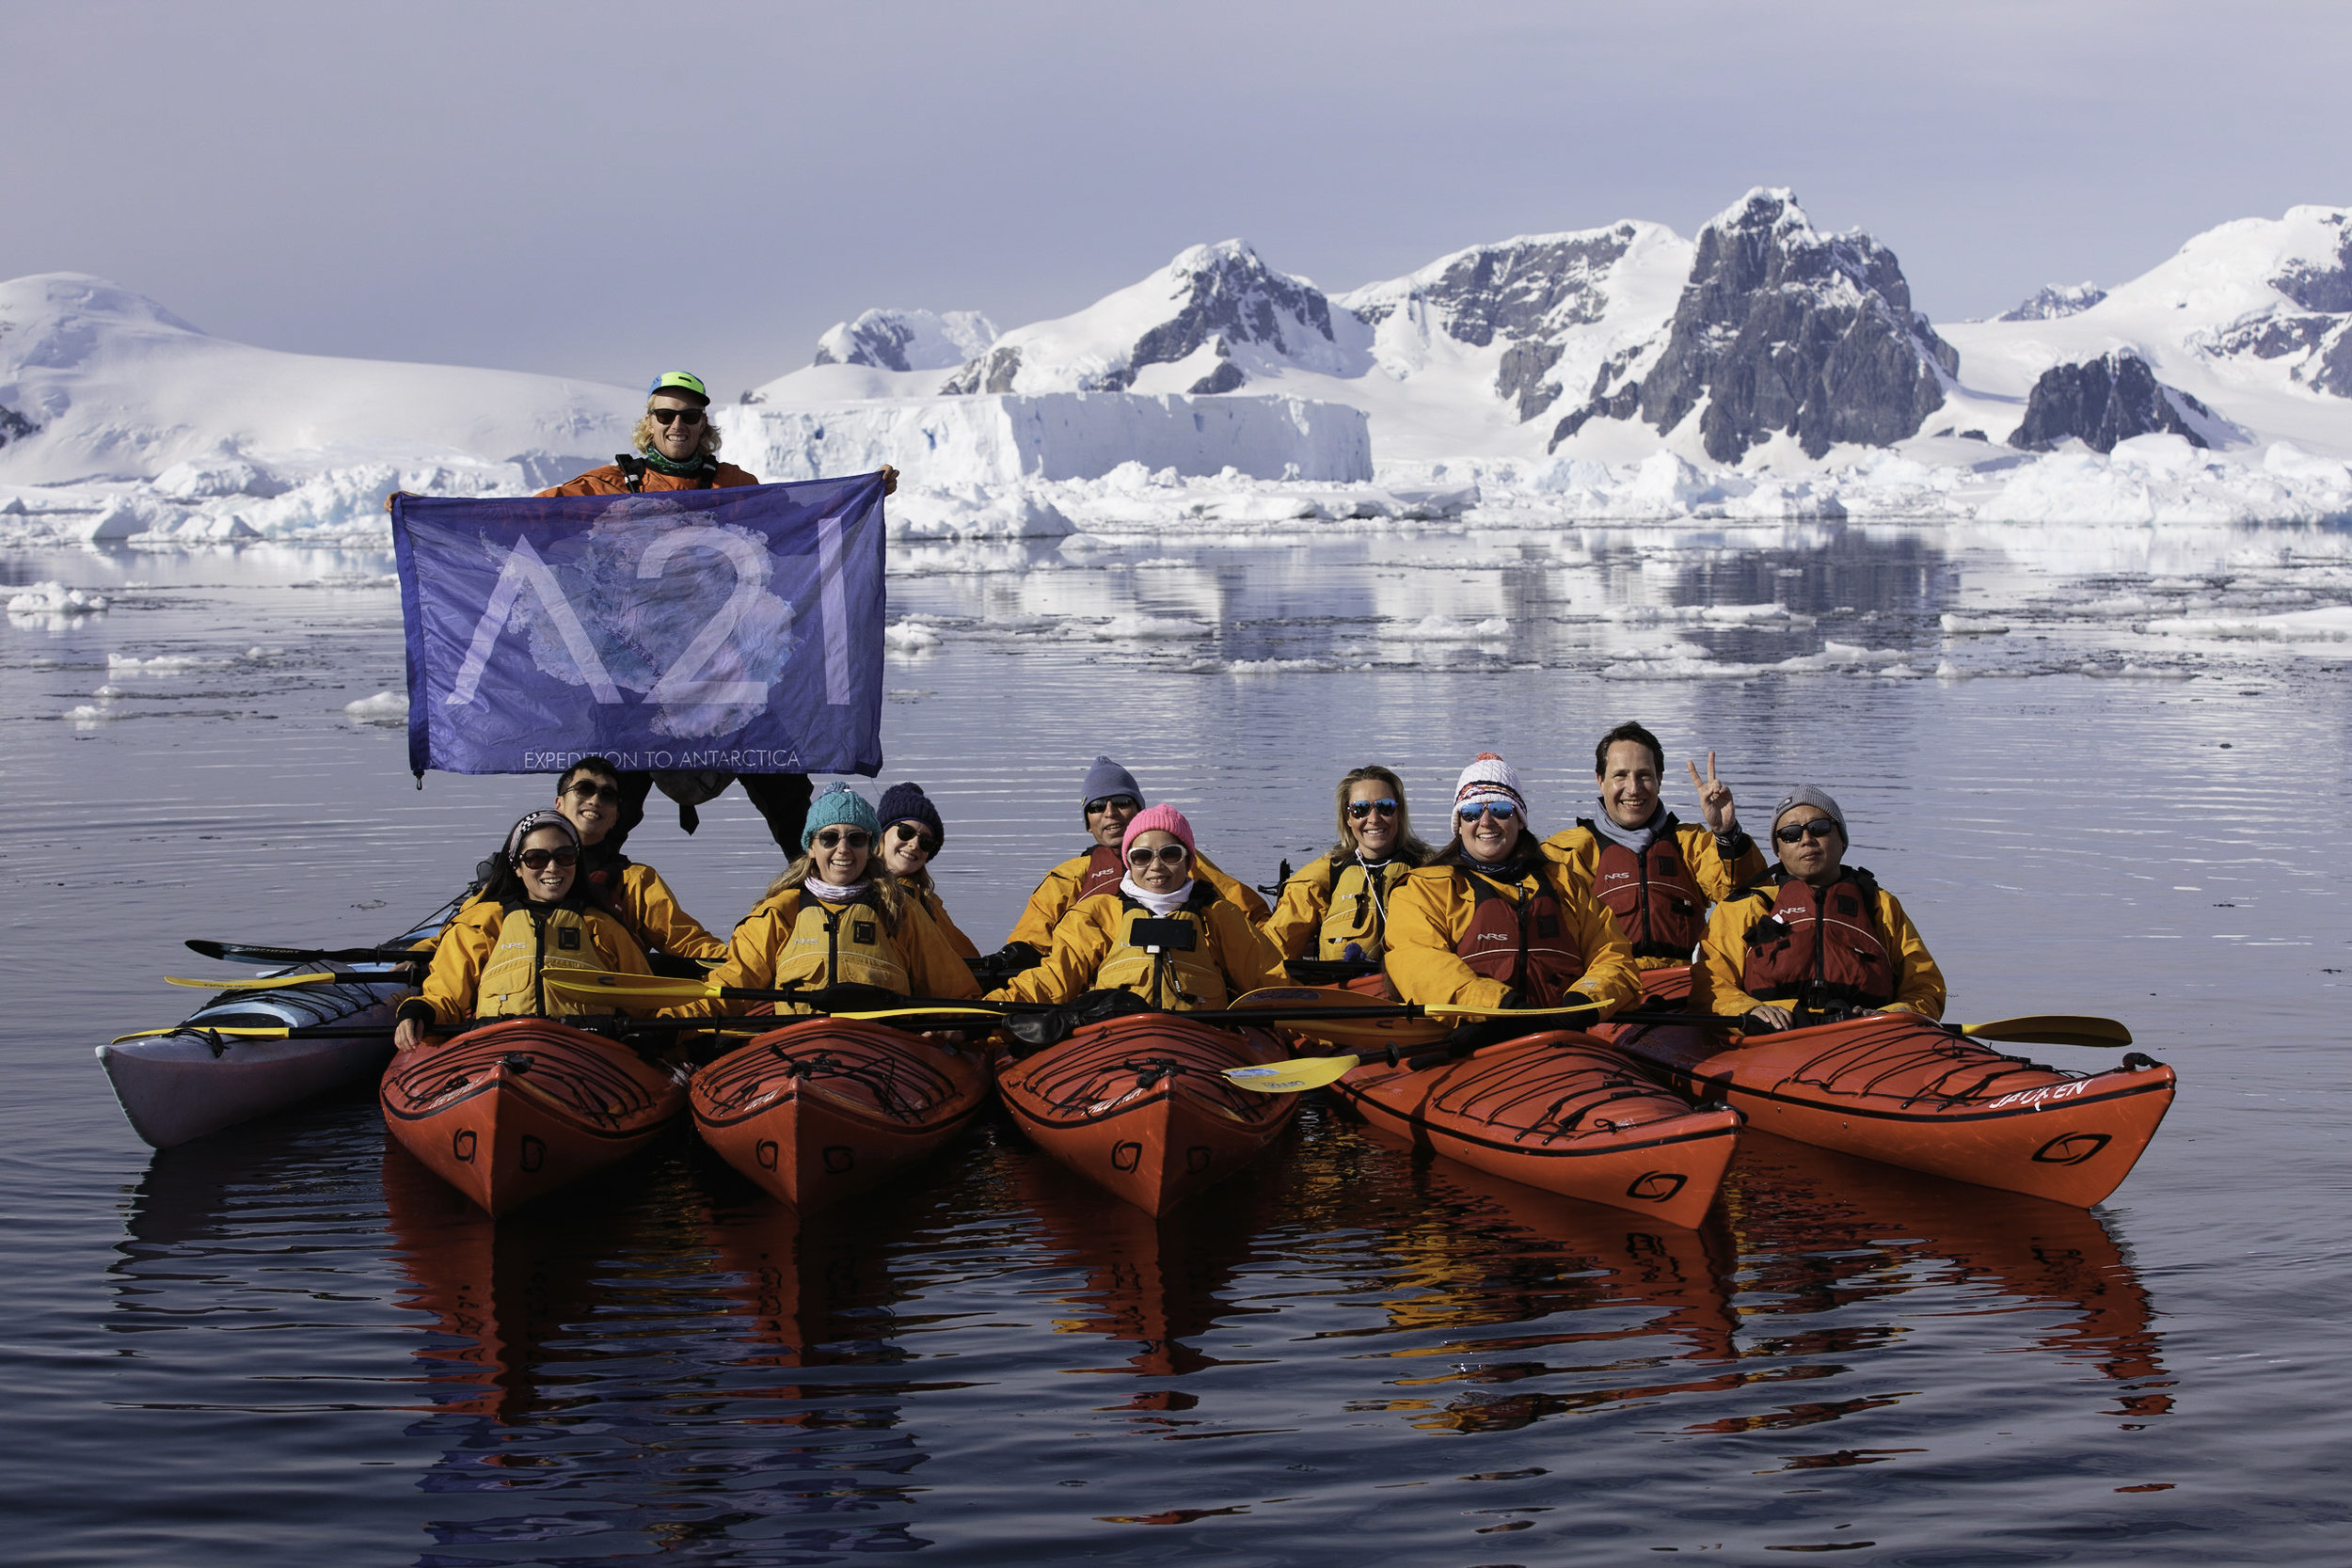 Kayakers posing with the Antarctica 21 flag.